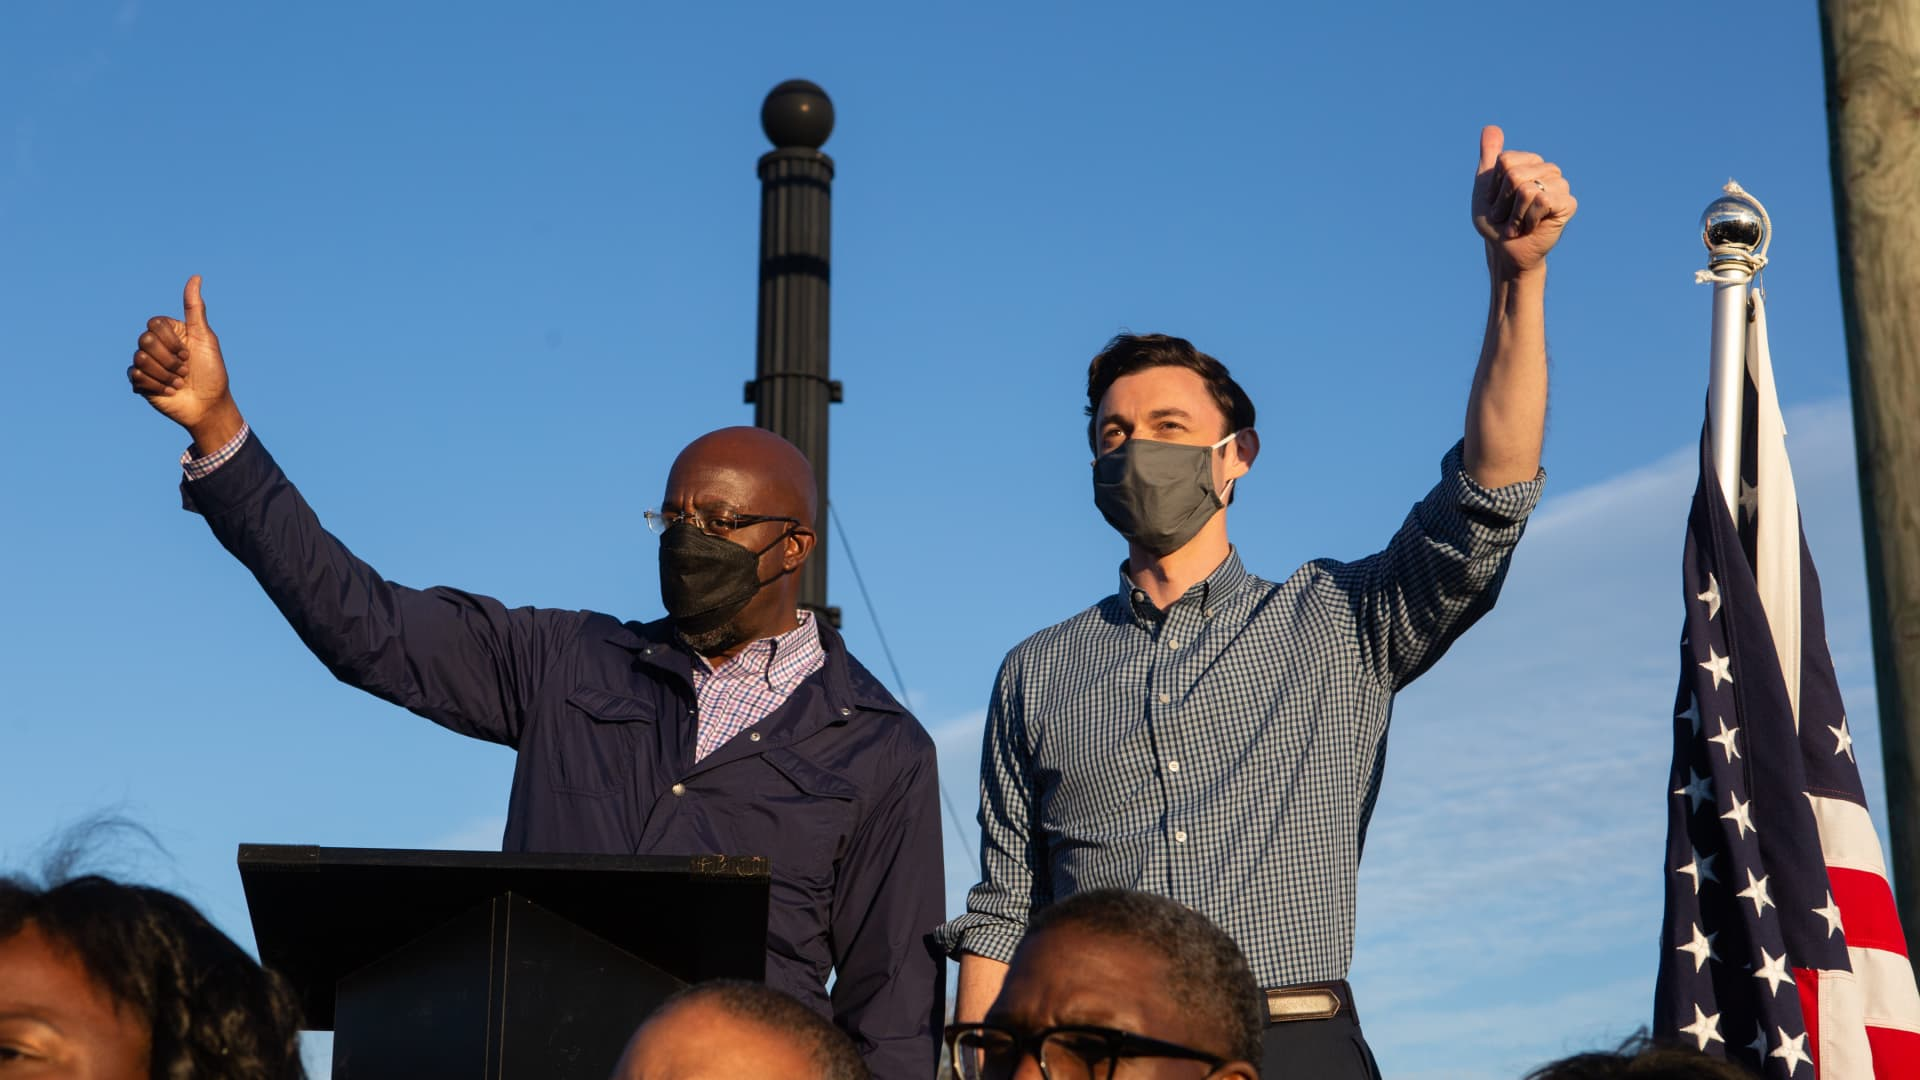 Democratic U.S. Senate candidates Jon Ossoff (R) and Raphael Warnock (L) of Georgia wave to supporters during a rally on November 15, 2020 in Marietta, Georgia.